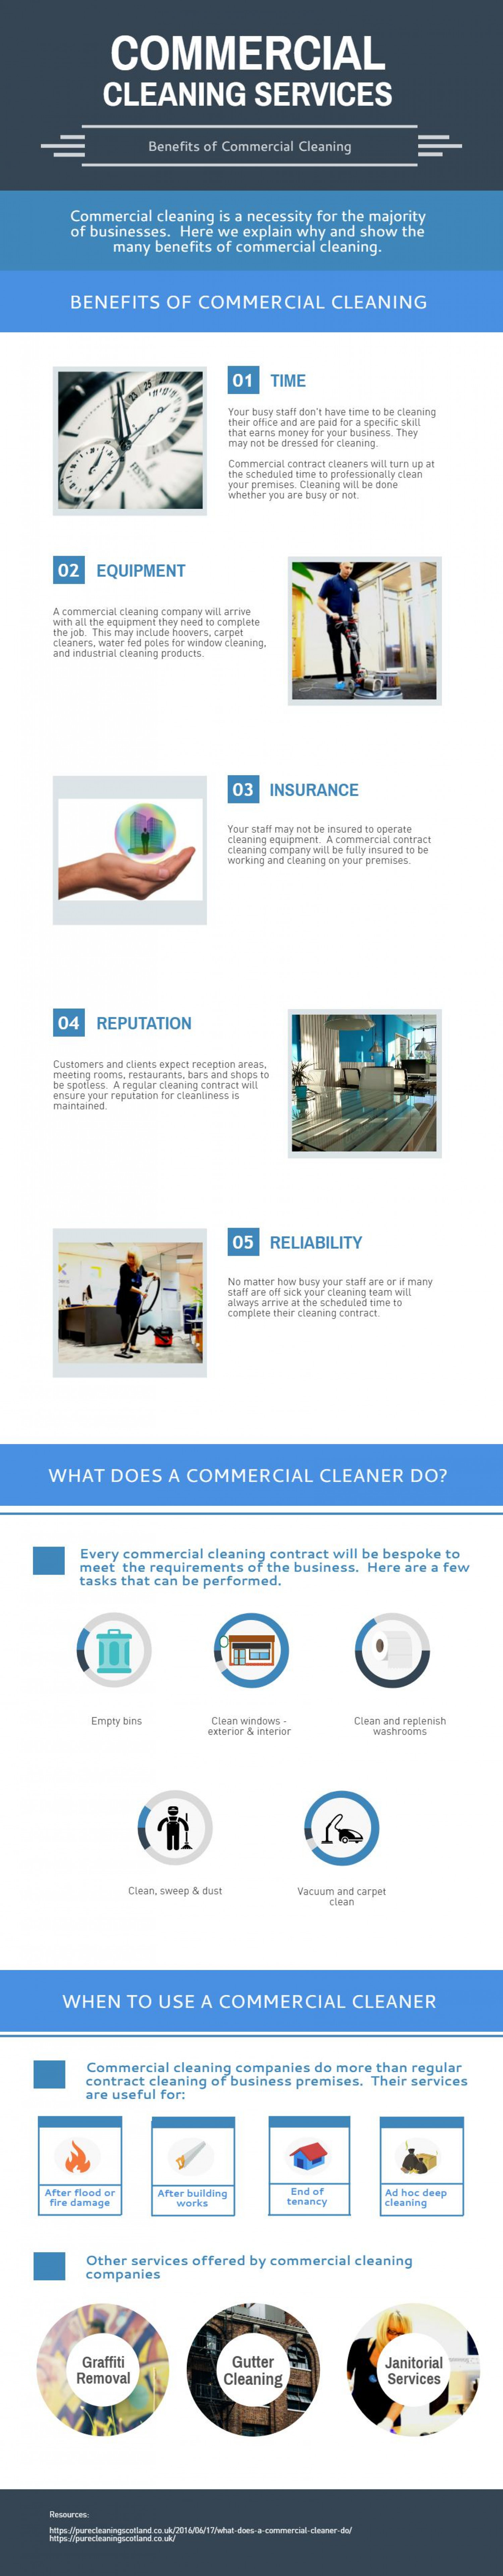 Commercial Cleaning Services Infographic